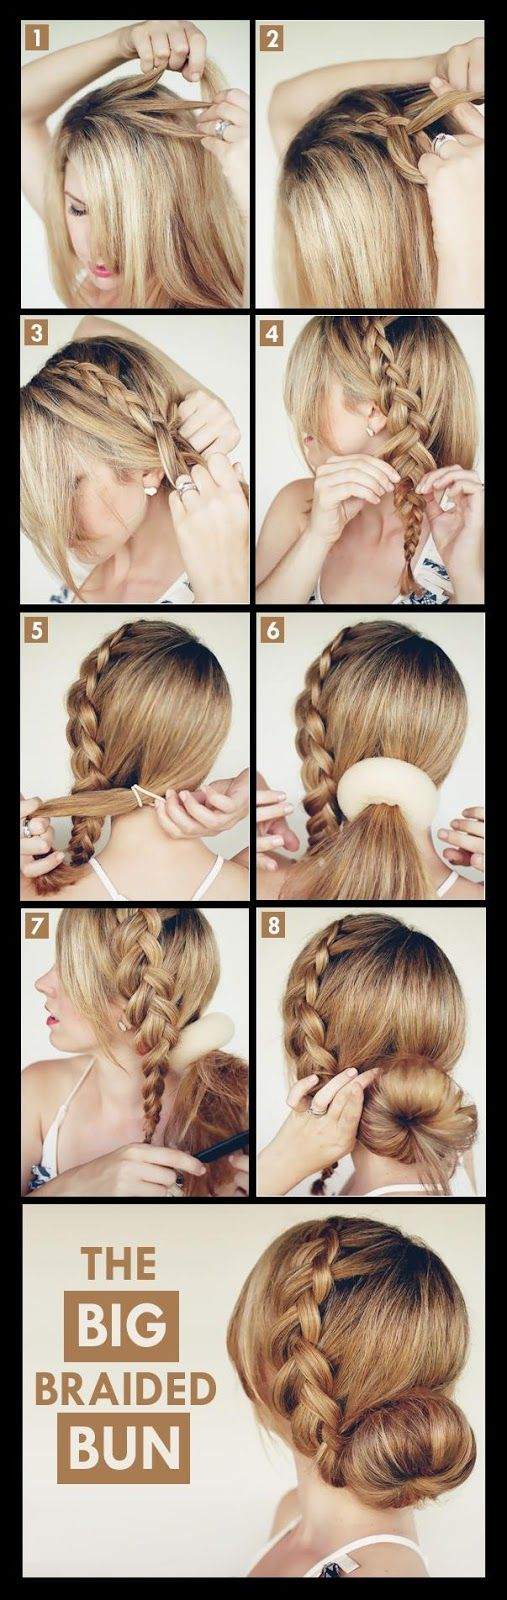 Big braided bun.